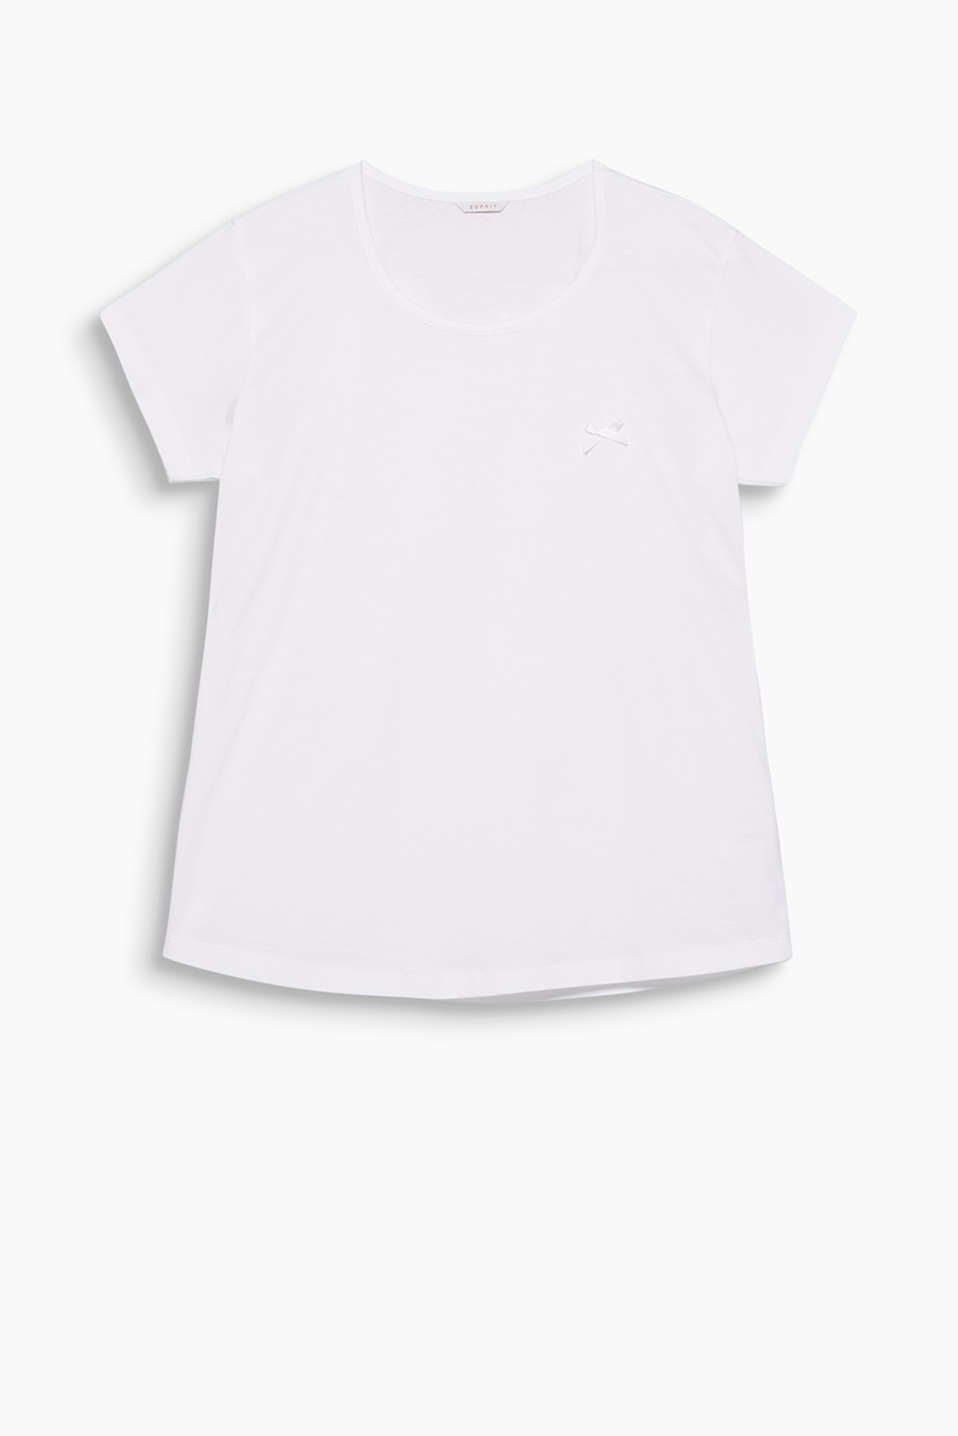 Esprit - Supersoft basic top, 100% cotton